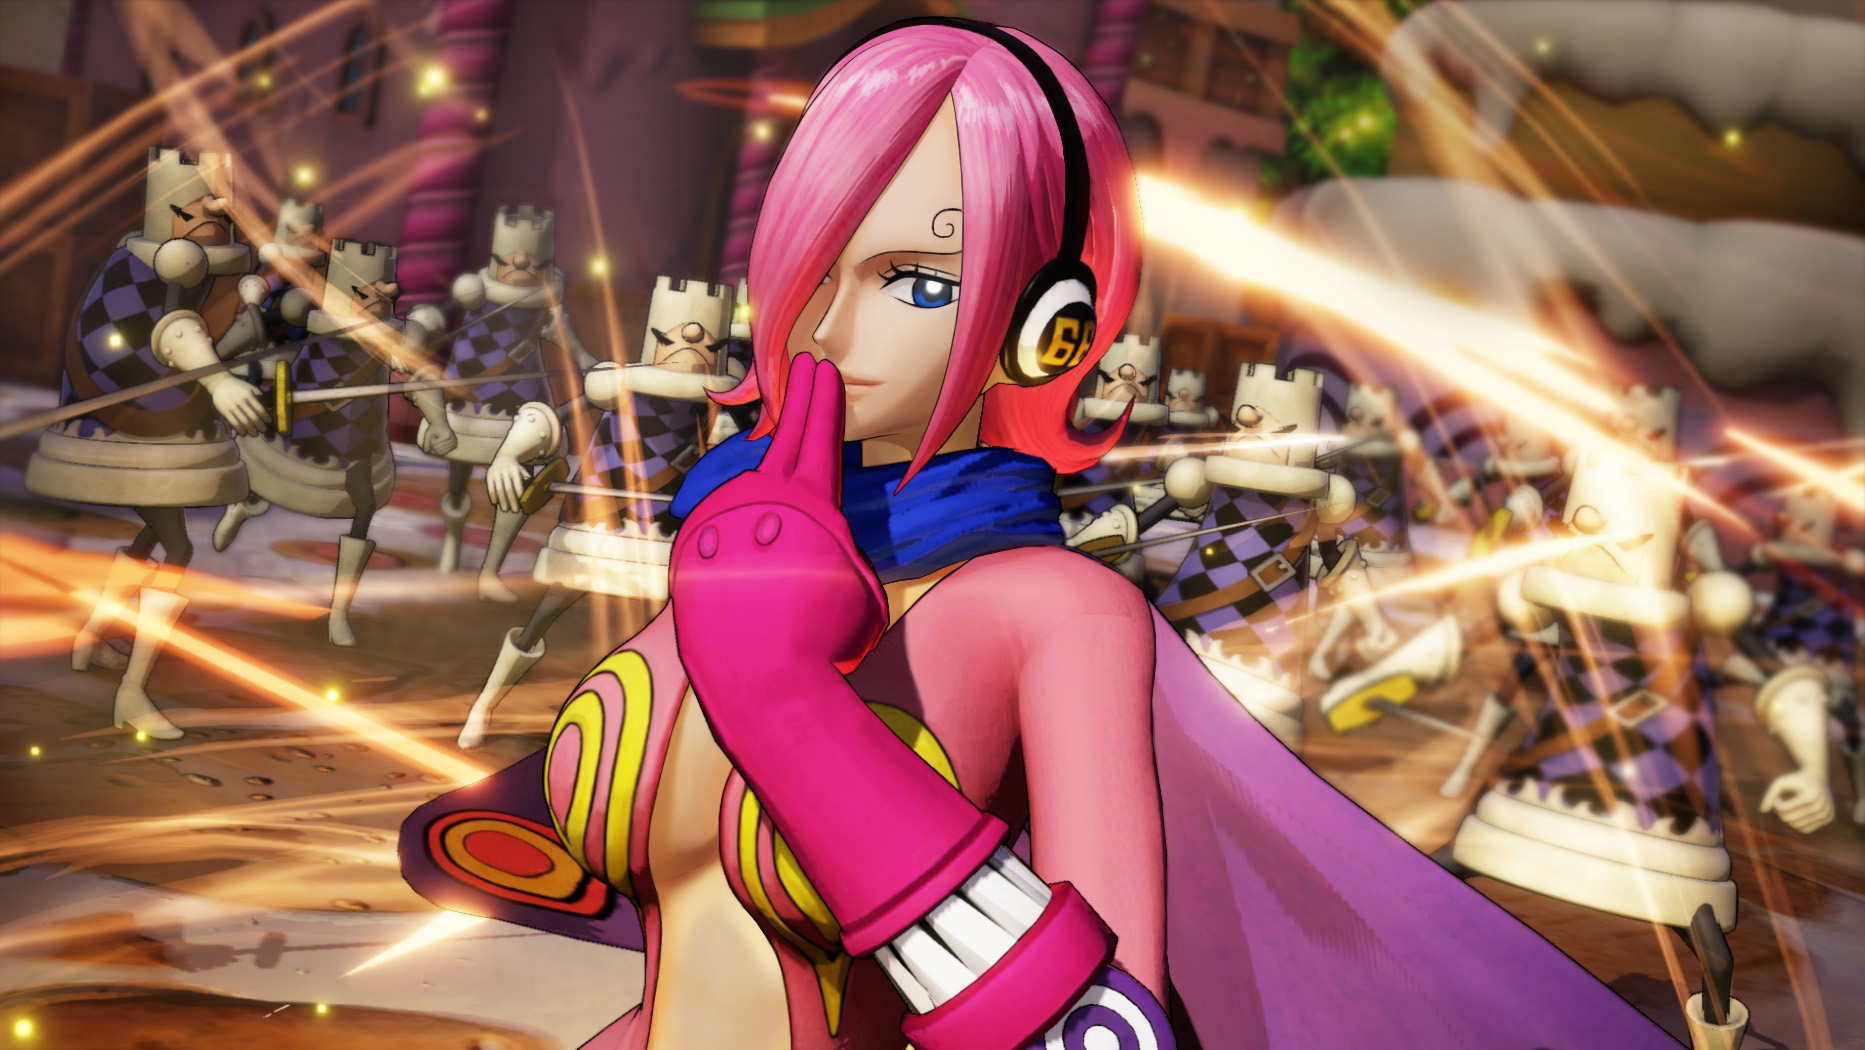 One Piece: Pirate Warriors 4 Gamescom 2019 Trailer and Screenshots